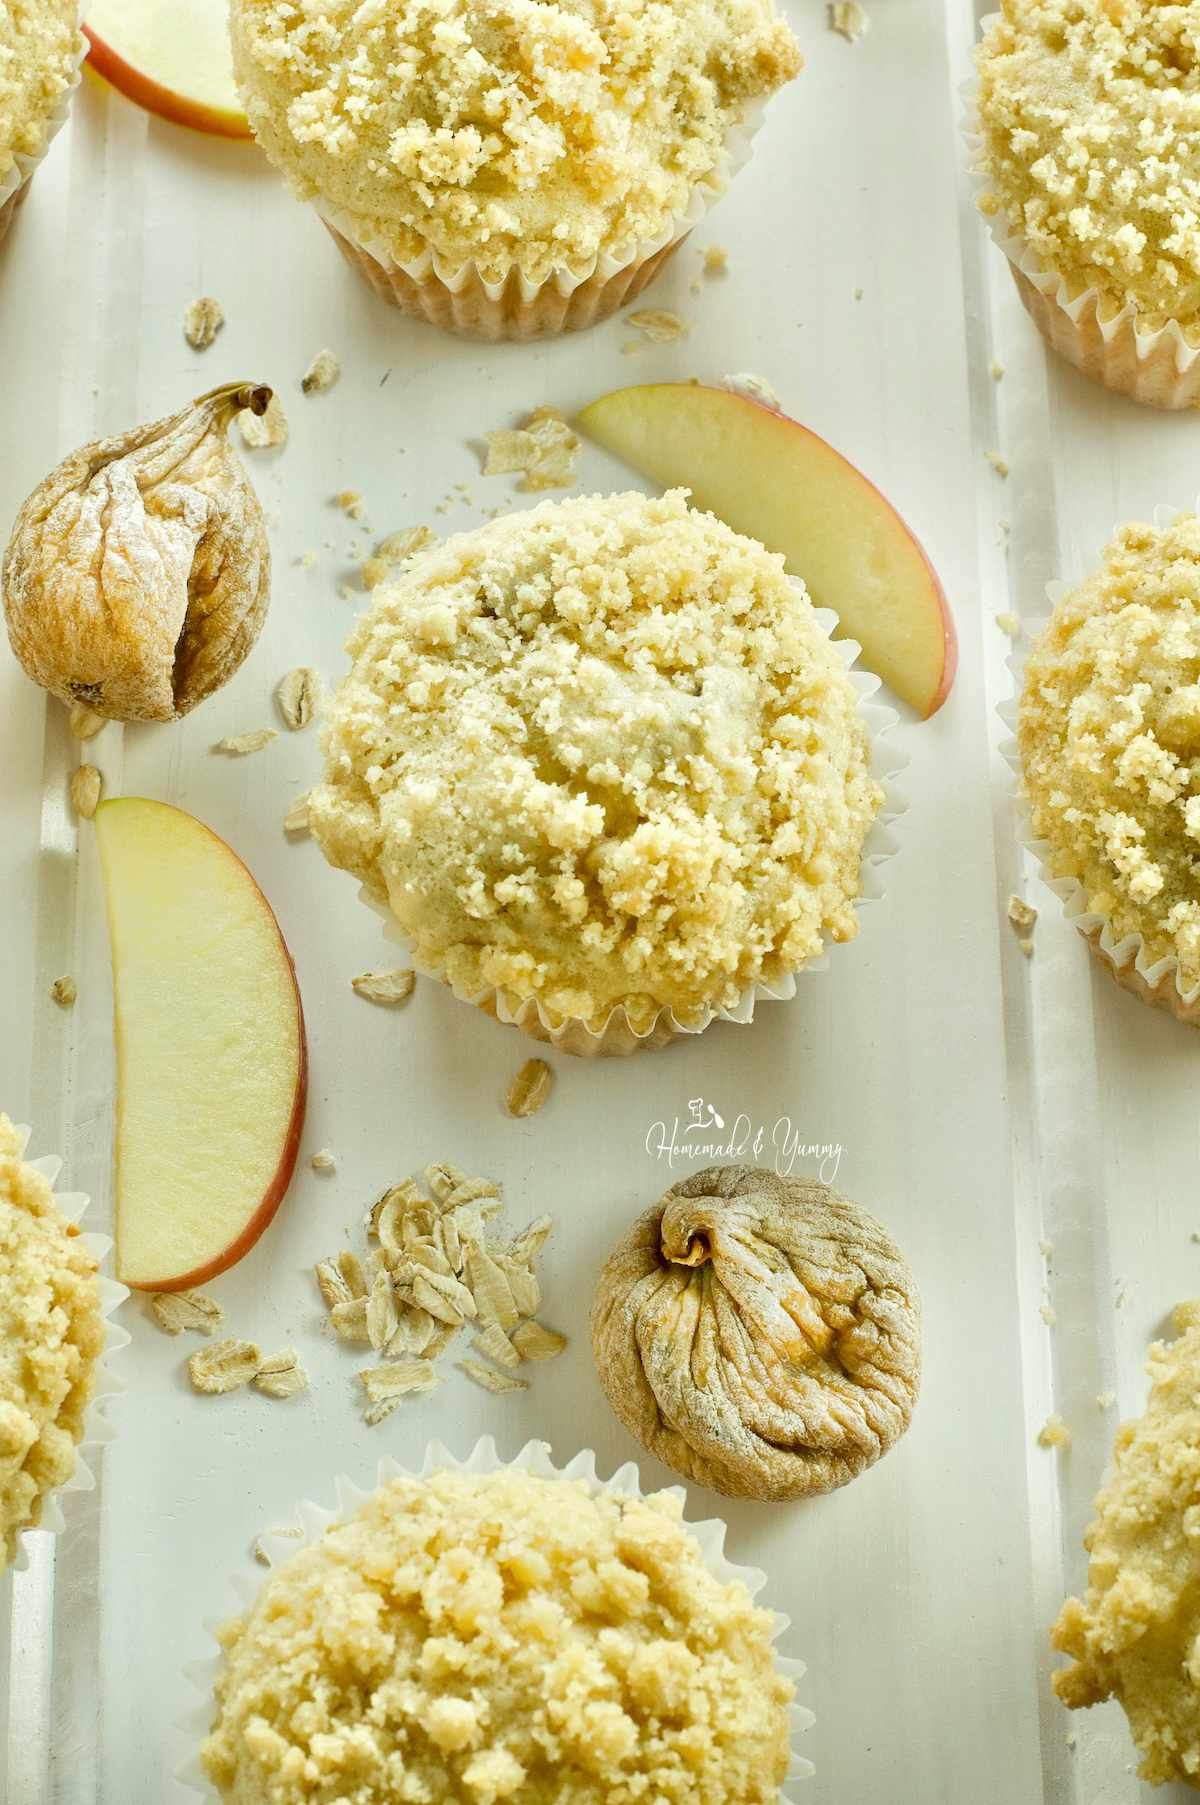 Fresh baked apple oatmeal muffins with figs and crumb topping.